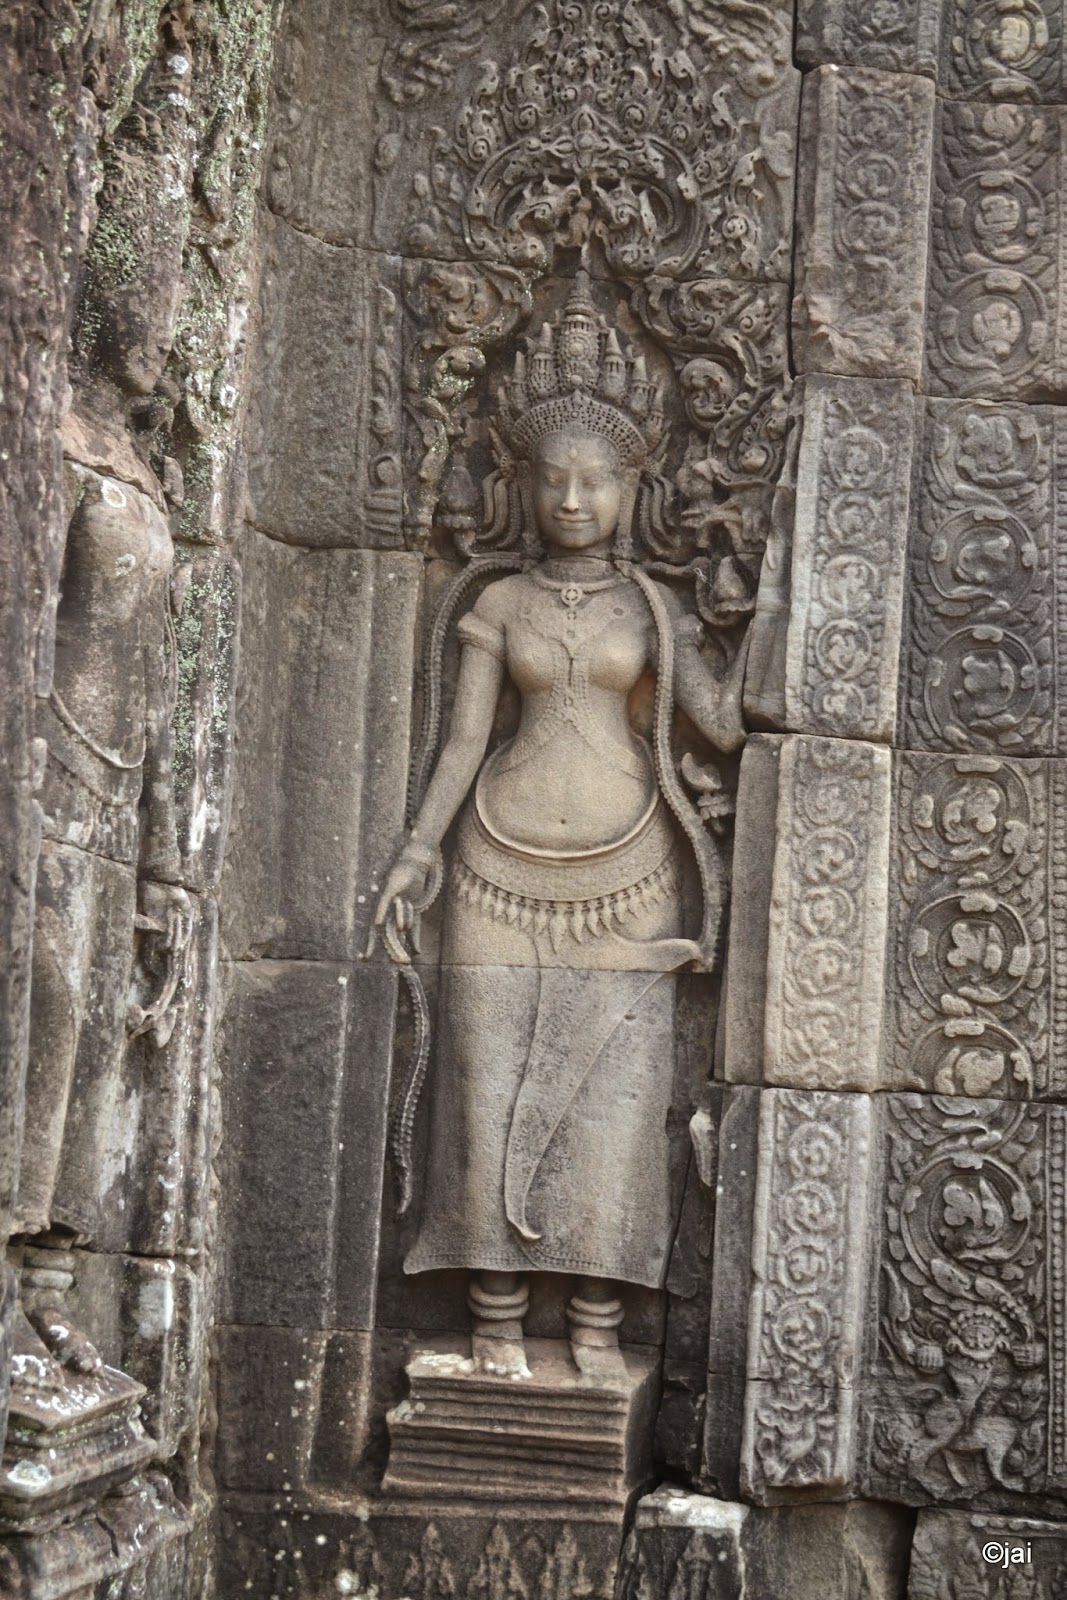 Apasara at The Bayon temple